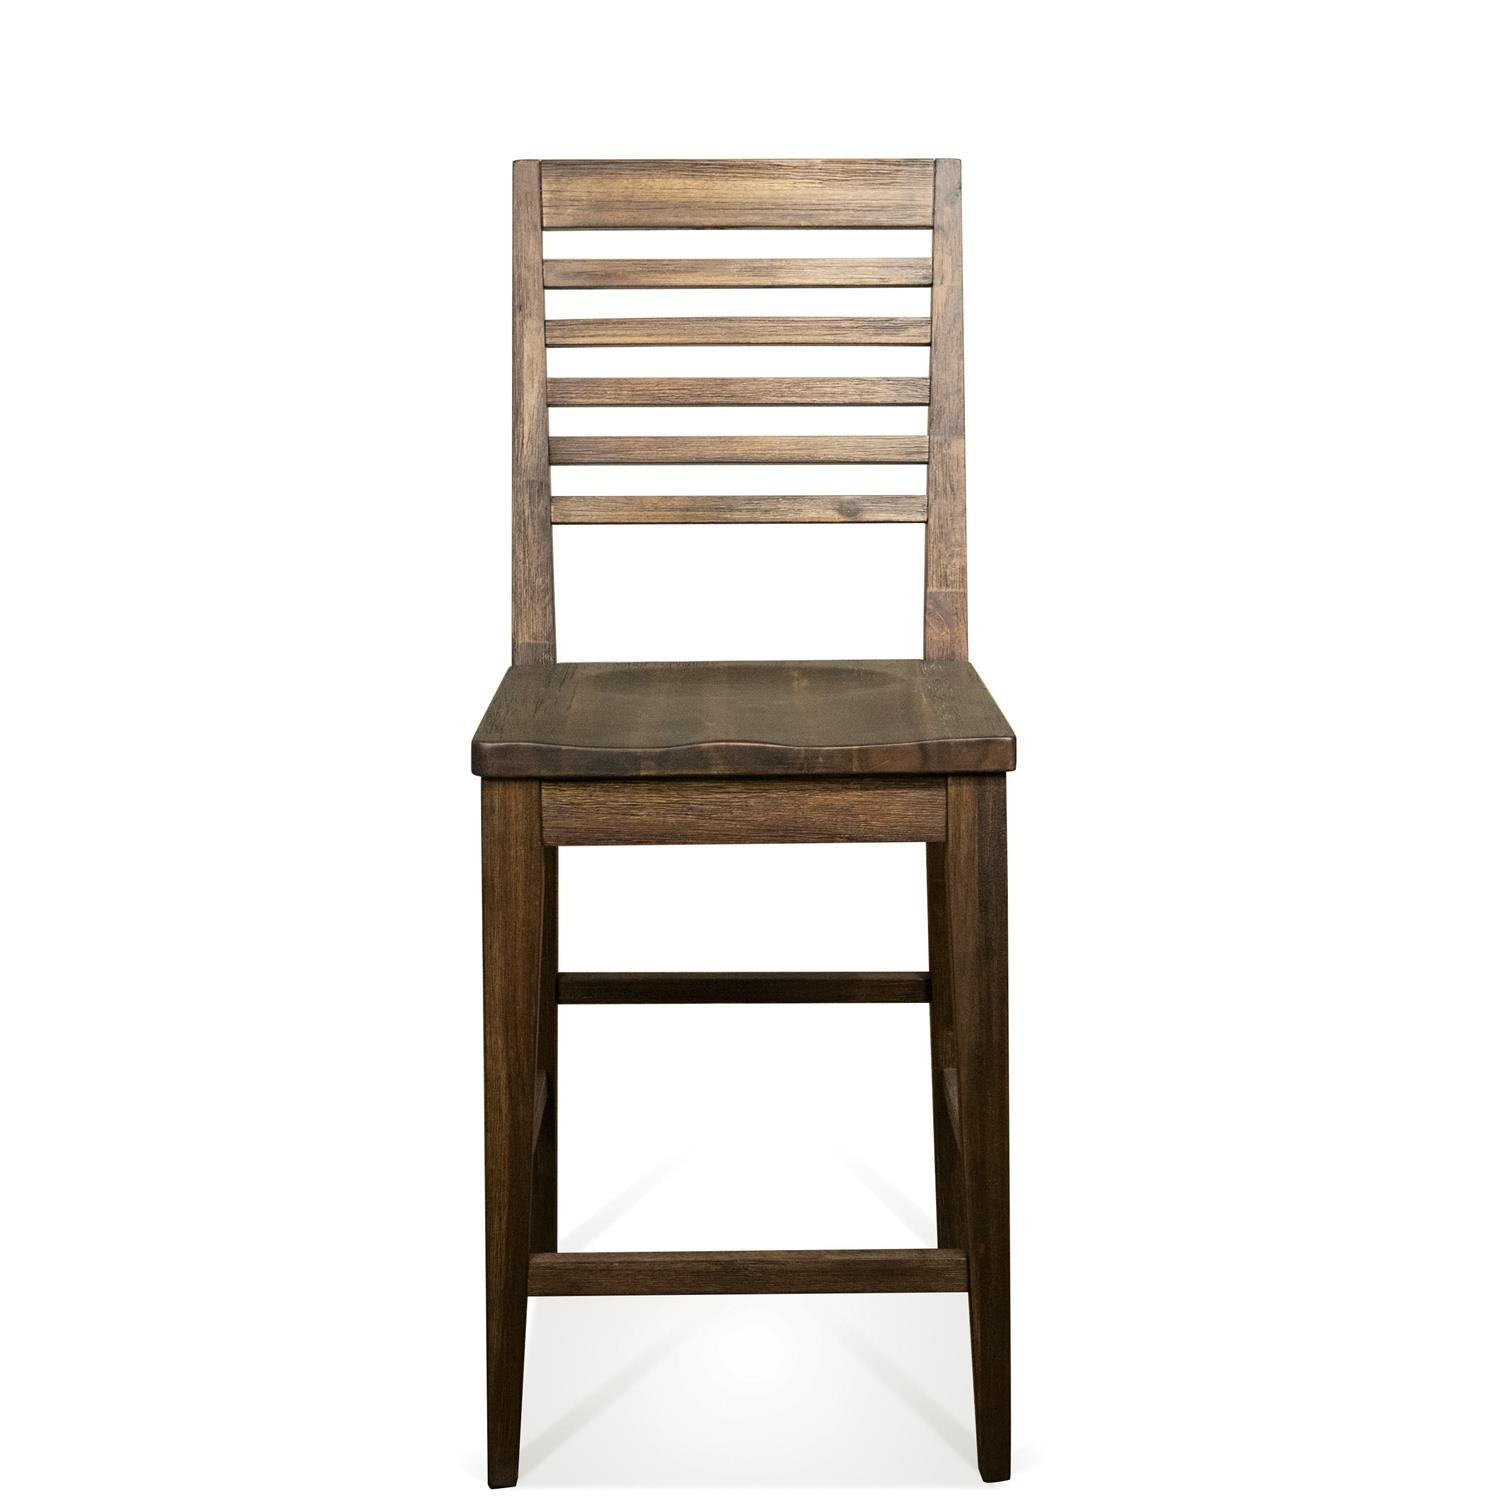 Riverside Woven Counter Stool 15338FABRICS/FINISHES/PIECES SHOWN IN  PHOTOGRAPHY, MAY NOT BE